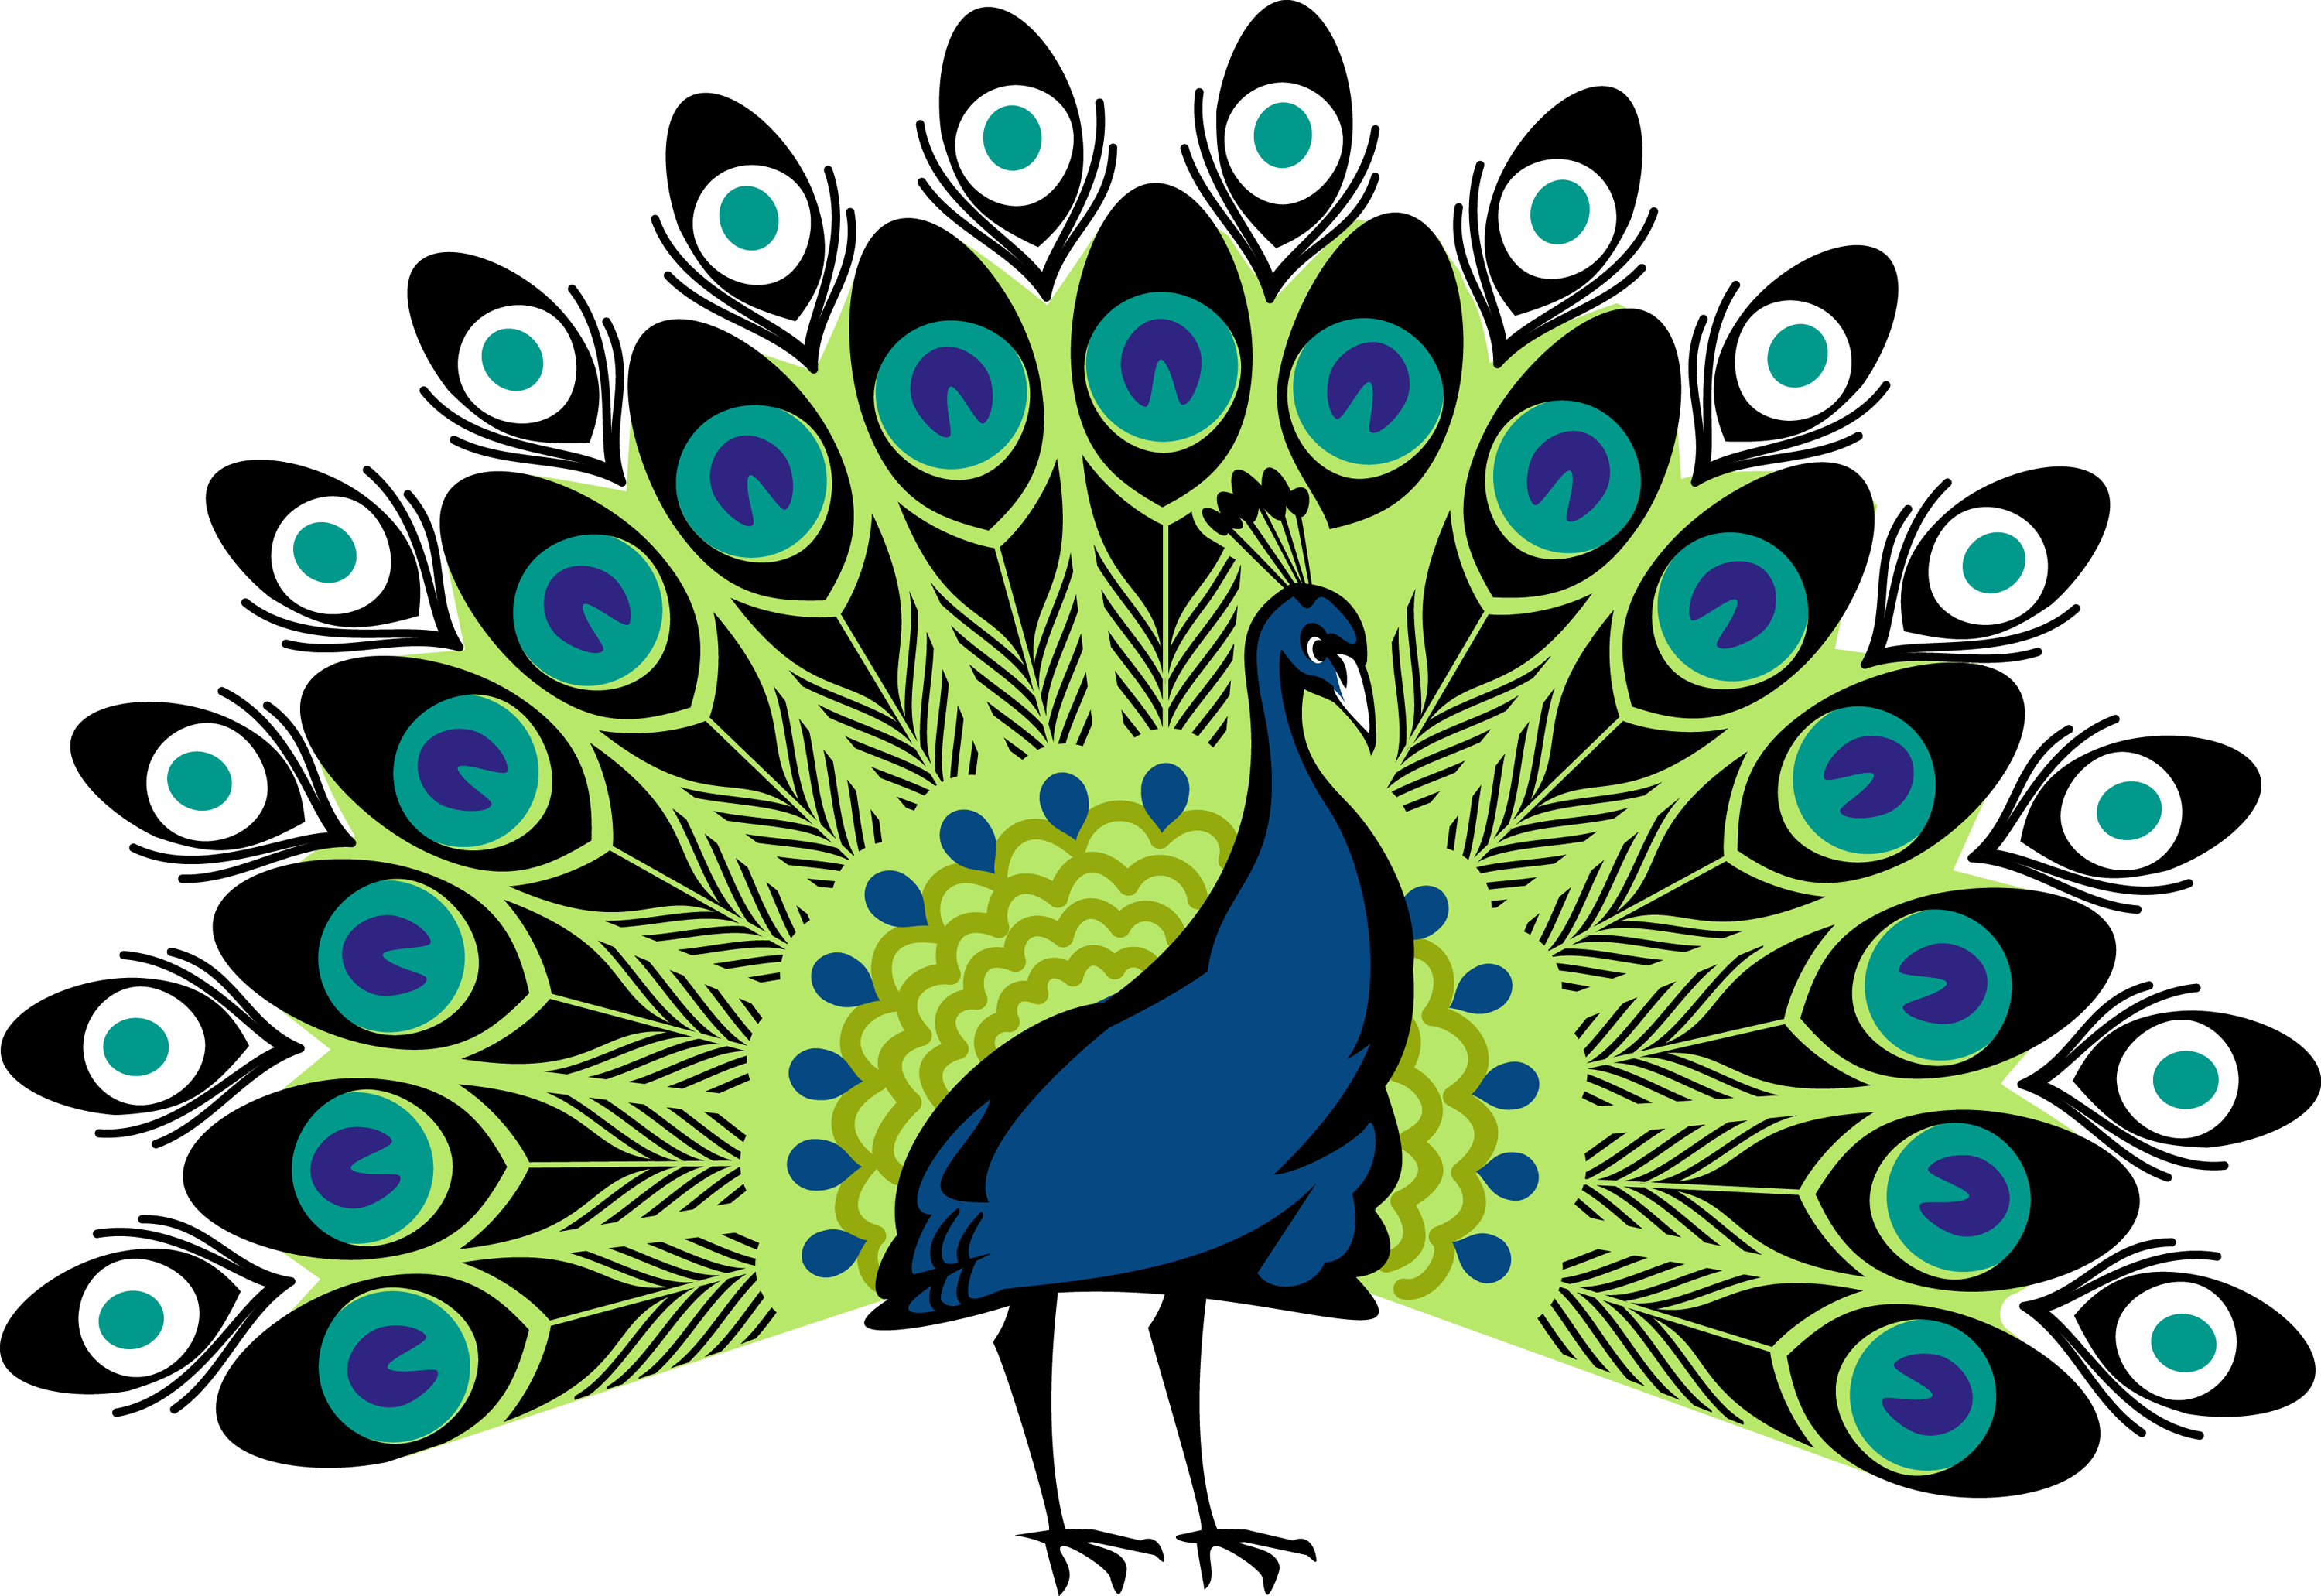 png Png images free download. Peacock clipart.